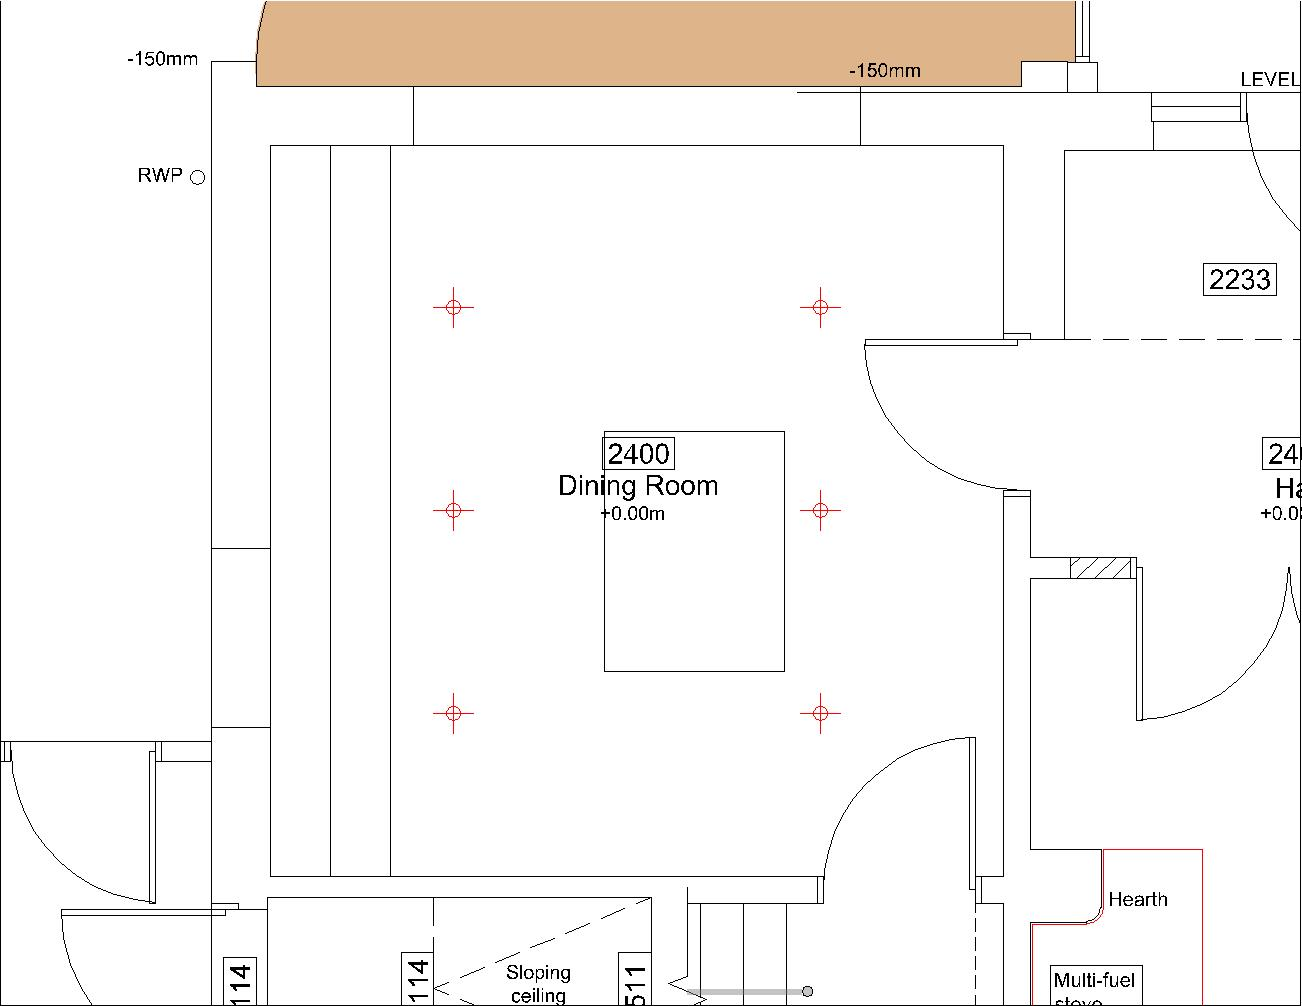 cad drawing showing plan on dining room